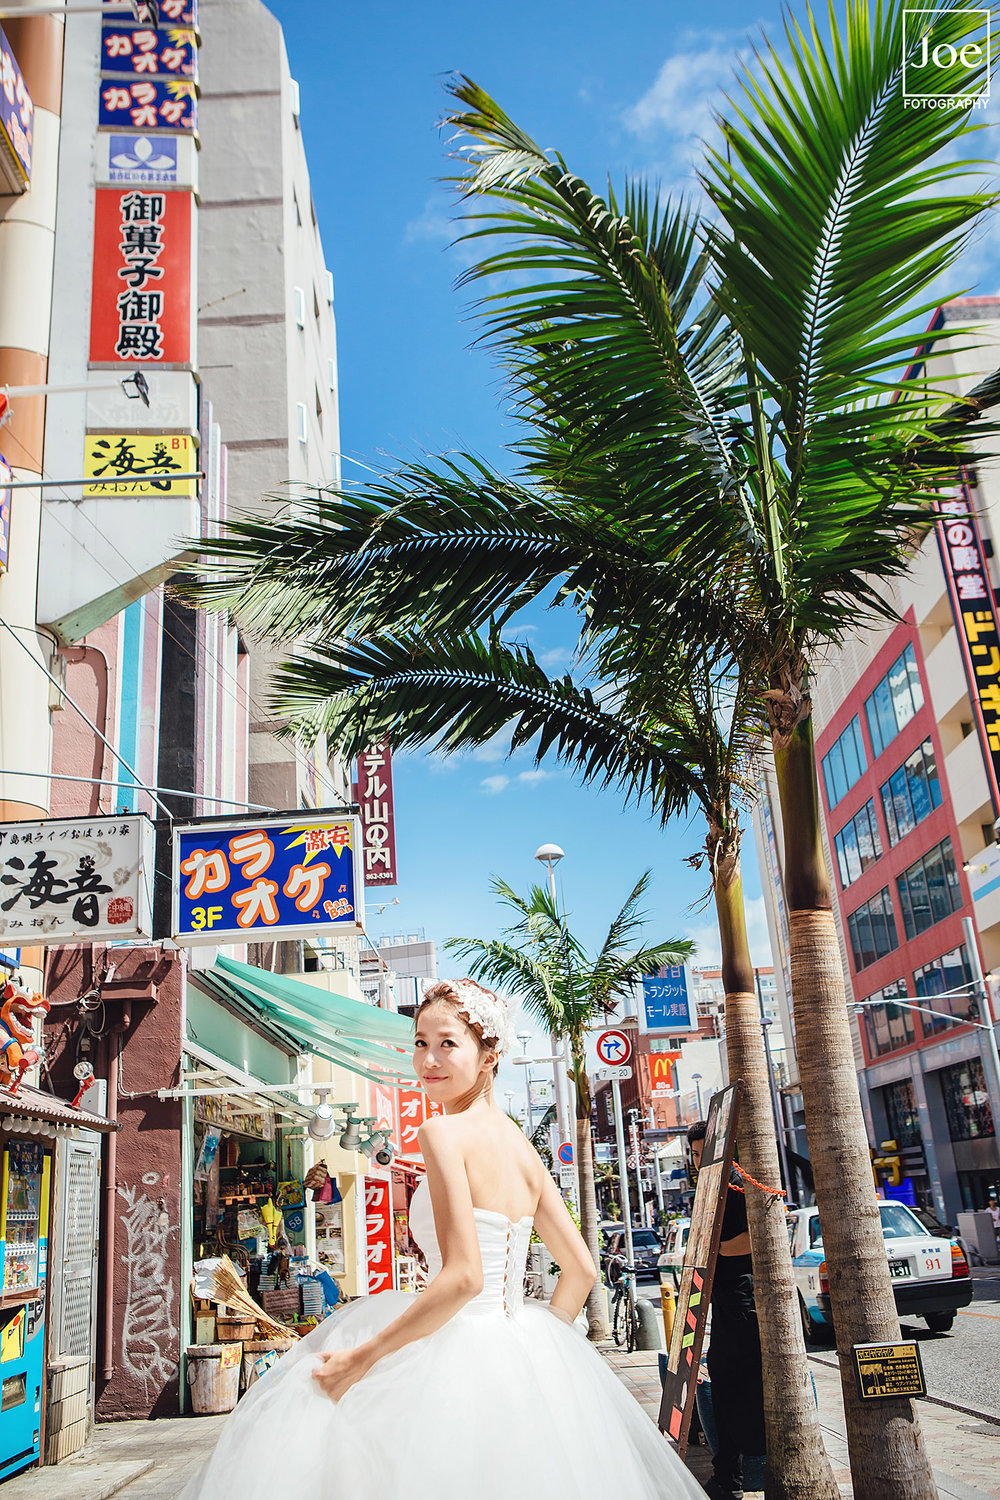 08-okinawa-kokusai-dori-pre-wedding-melody-amigo-joe-fotography.jpg